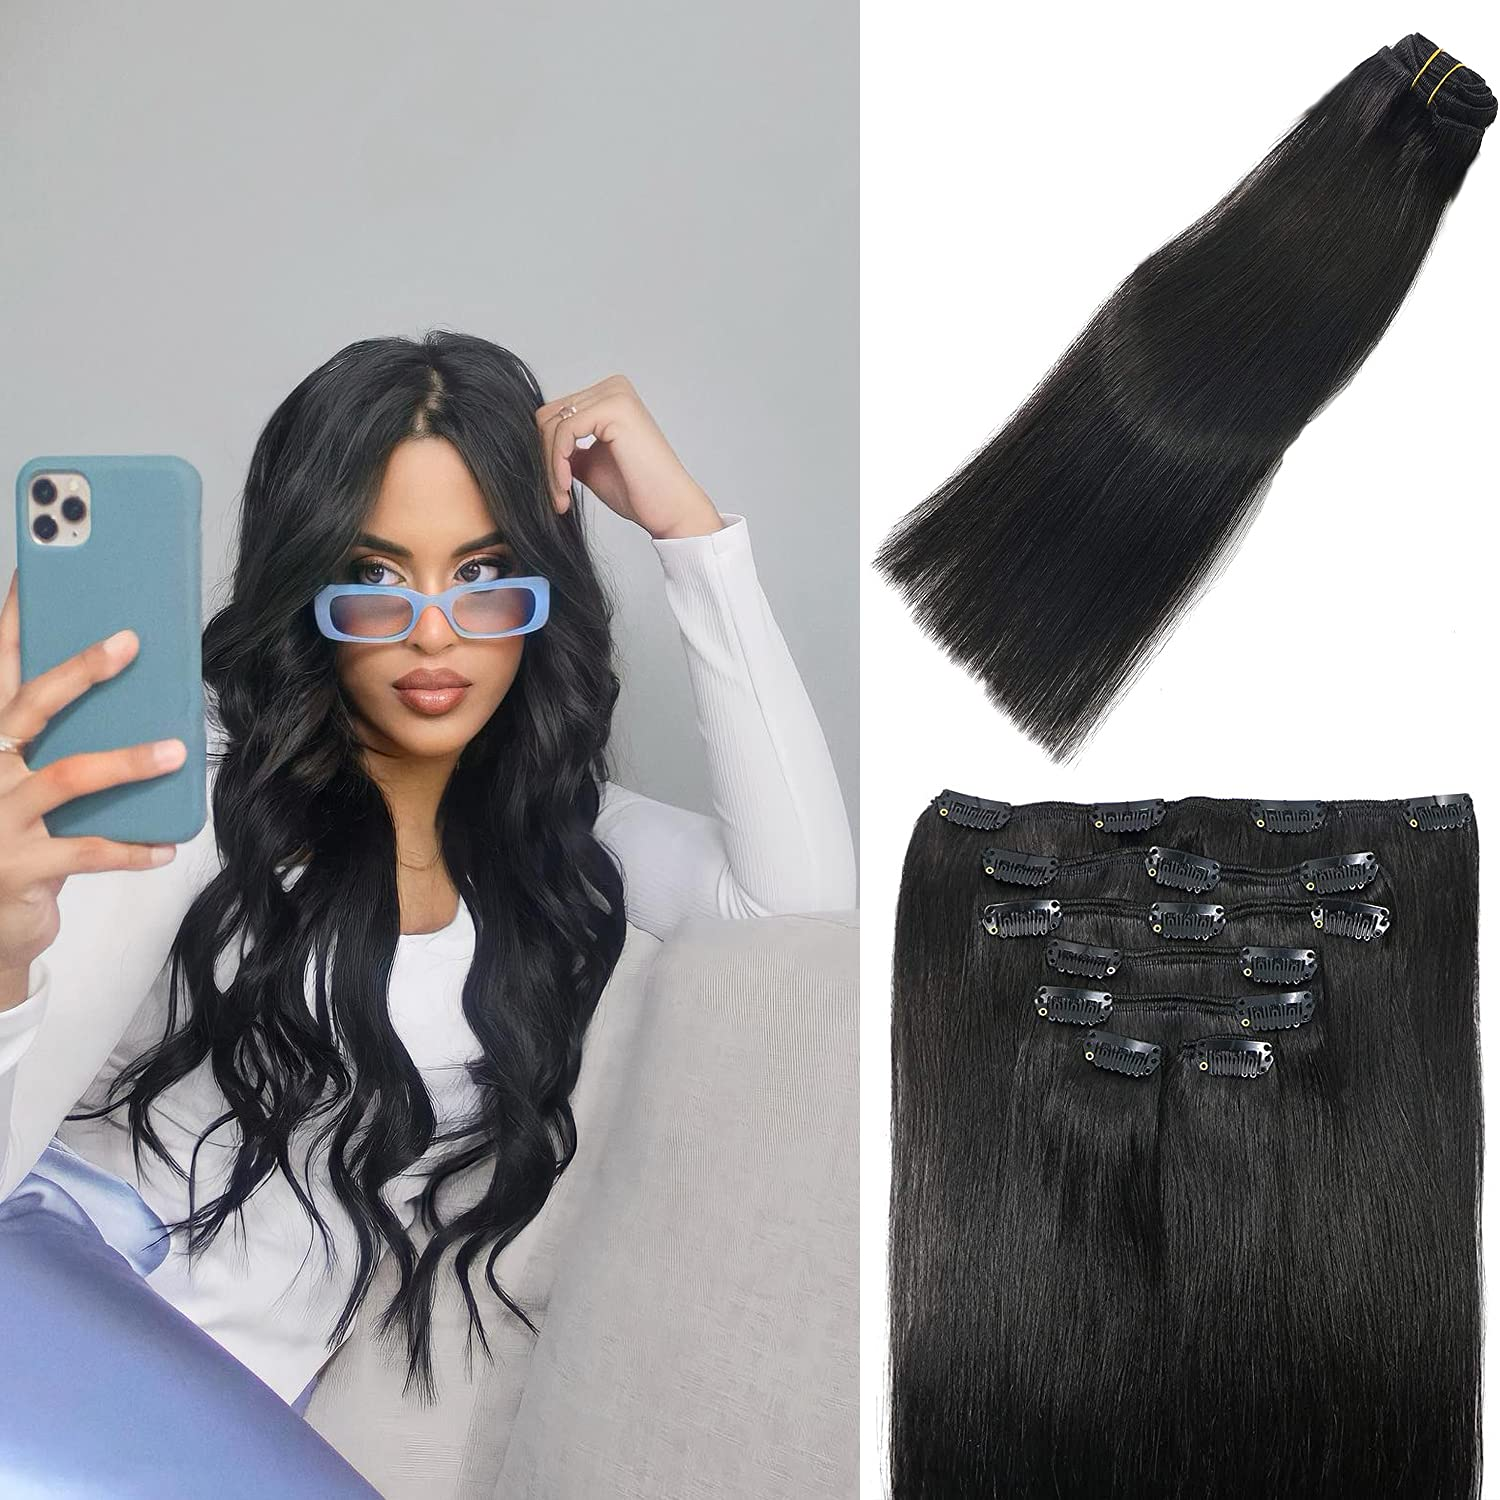 ALLBIZ Clip in Human Hair Extensions Extensio Natural Free shipping Black sale